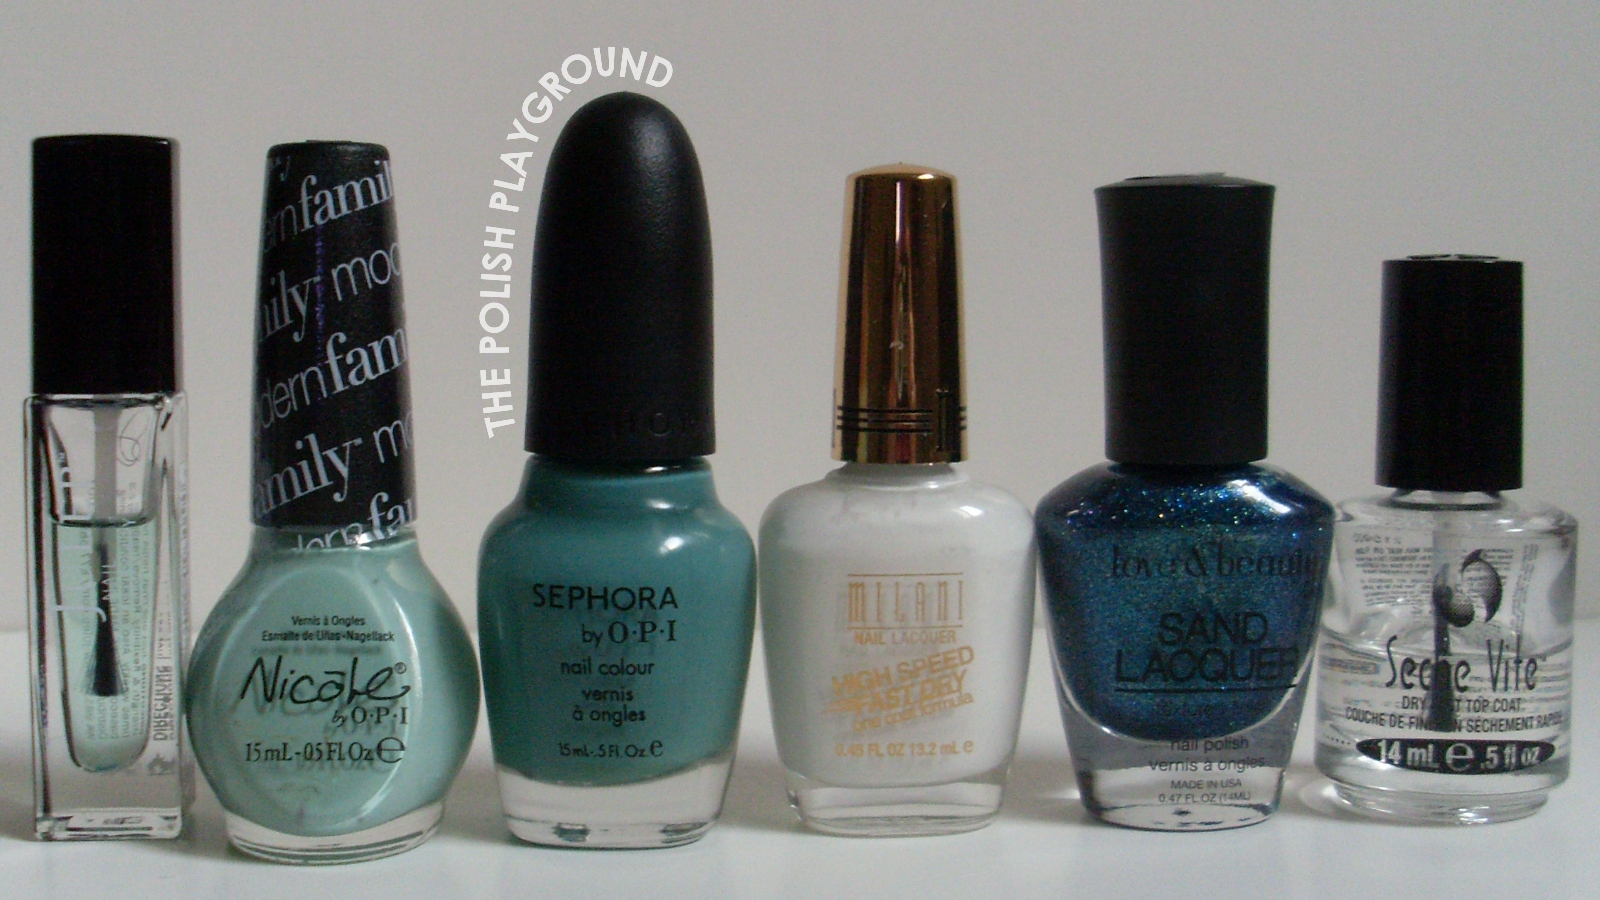 Julep, Nicole by OPI, Sephora by OPI, Milani, Love & Beauty, Seche Vite